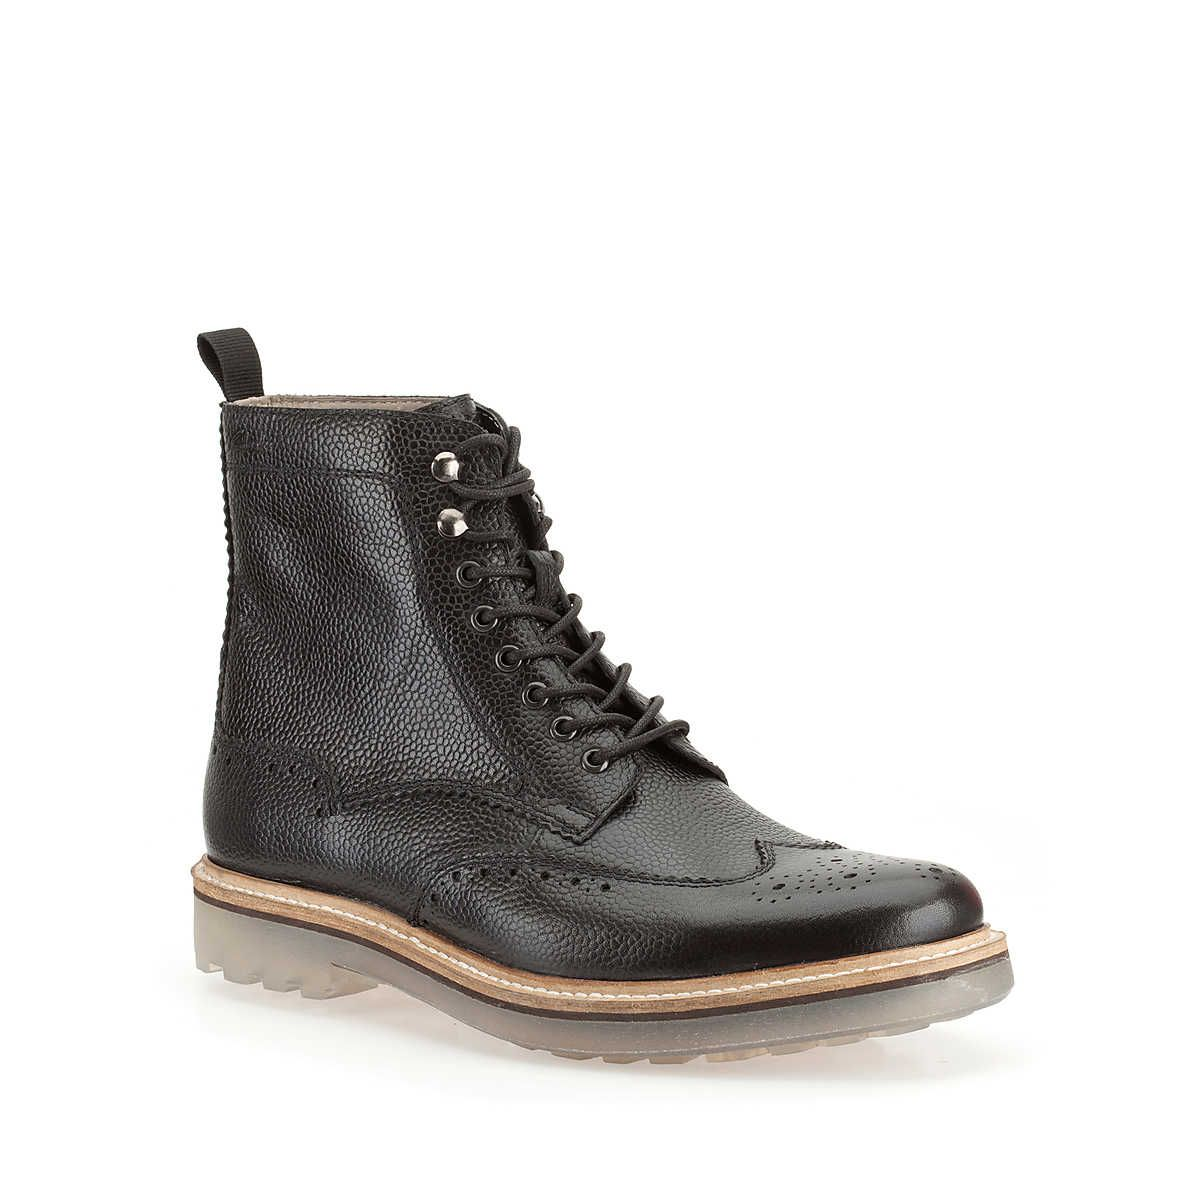 Monmart Rise in Blk Interest Lea - Mens Boots from Clarks